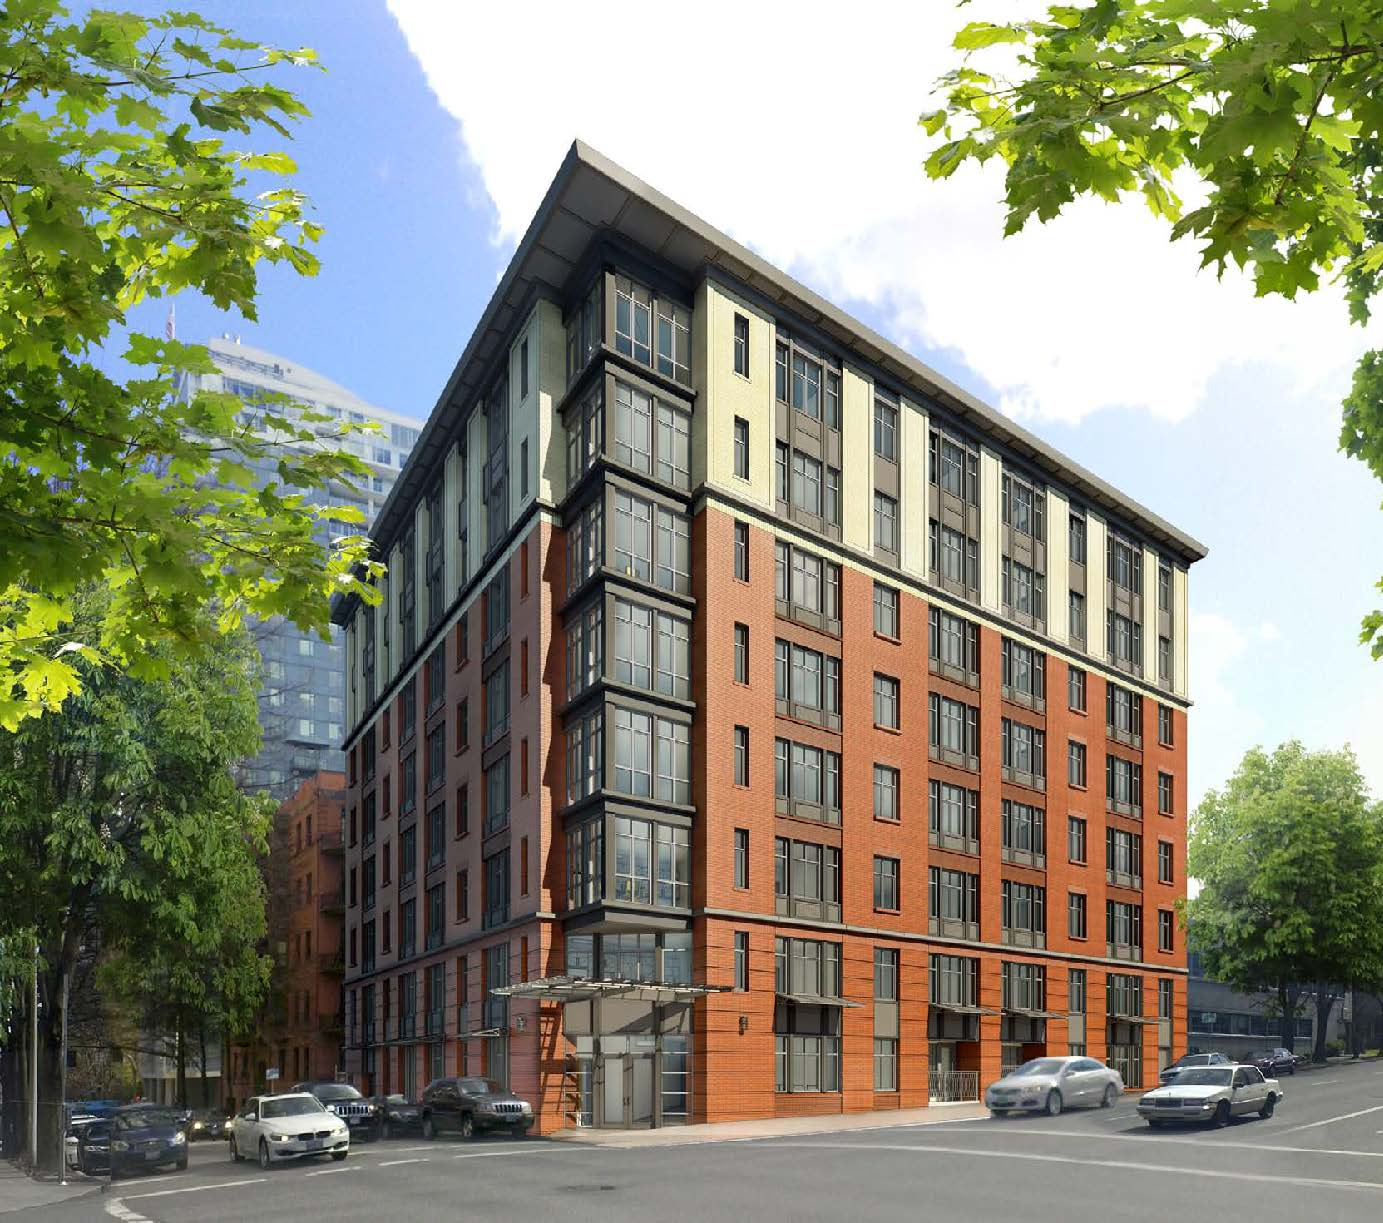 Apartment Buildings For Rent: Under Construction: 12th & Clay Apartments (images)